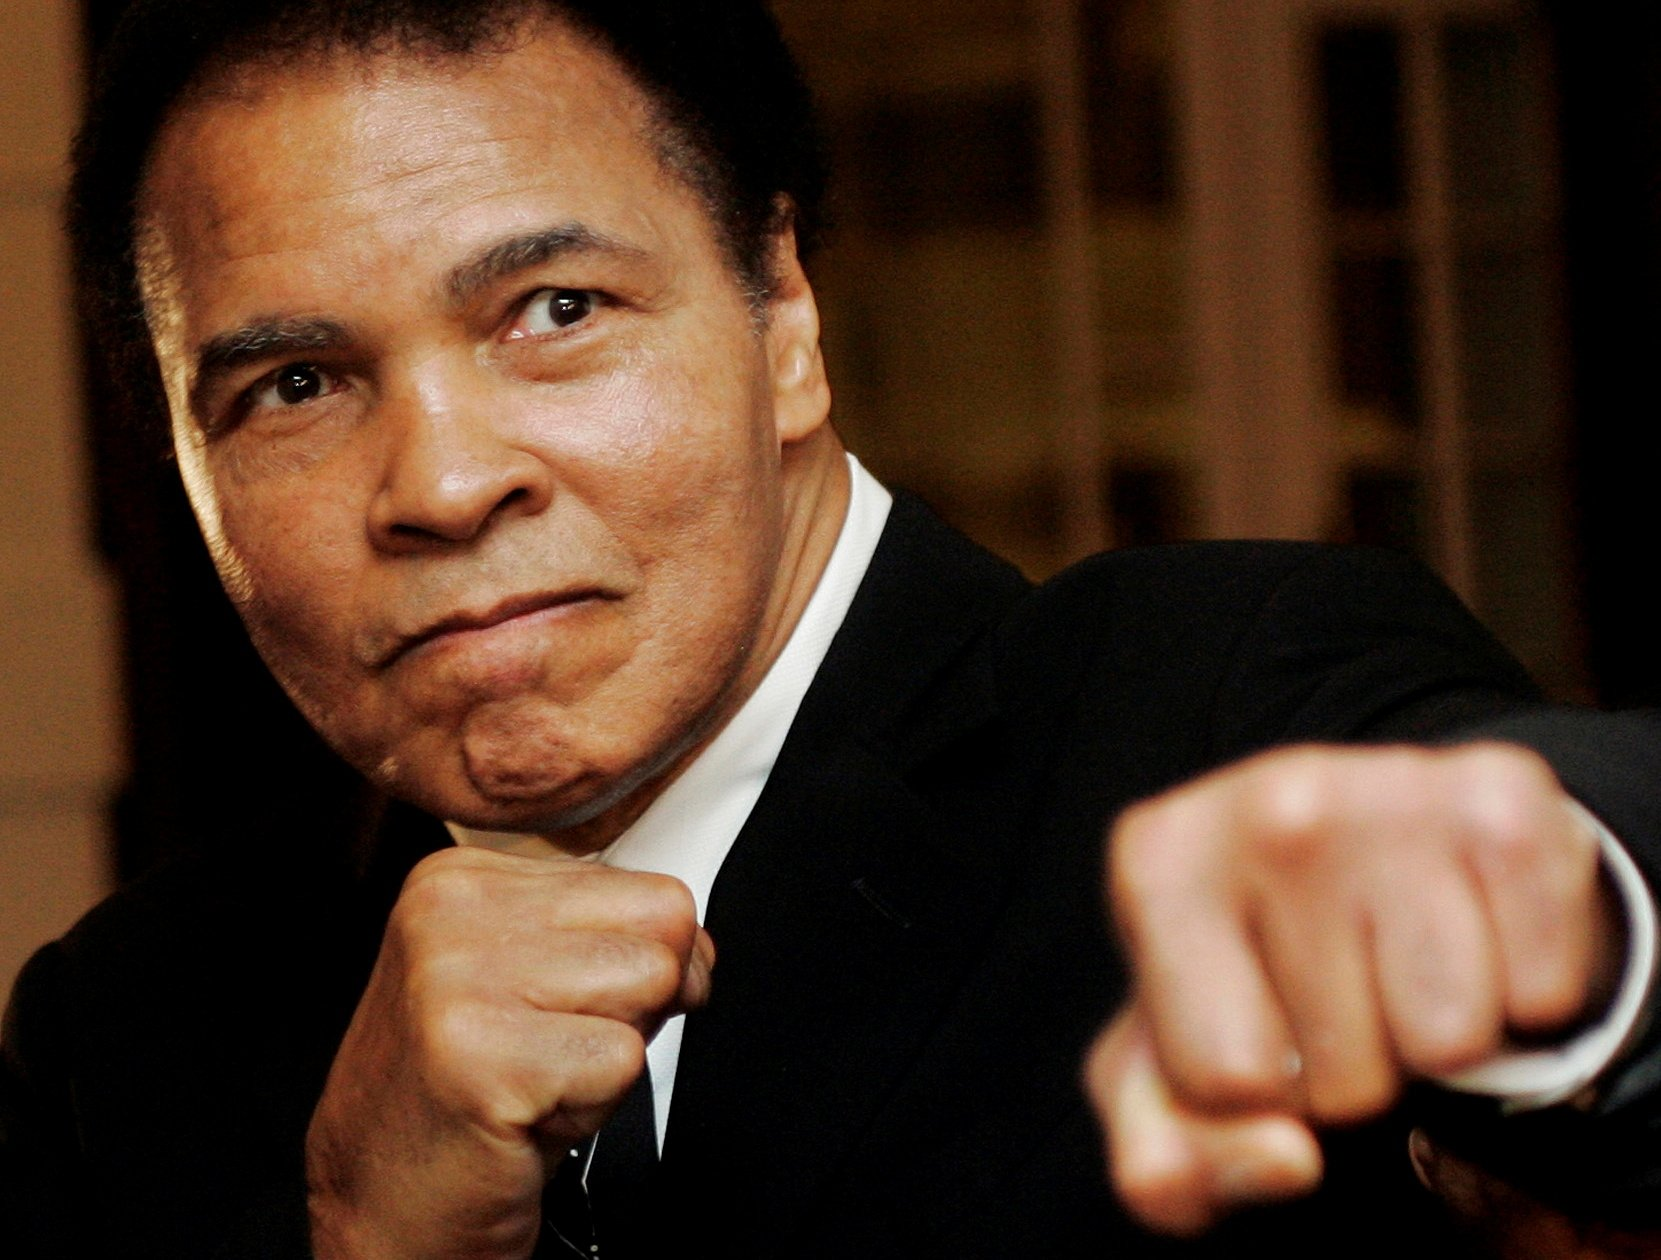 U.S. boxing great Muhammad Ali poses during the Crystal Award ceremony at the World Economic Forum (WEF) in Davos, Switzerland, in this Jan. 28, 2006 photo. (REUTERS Photo)